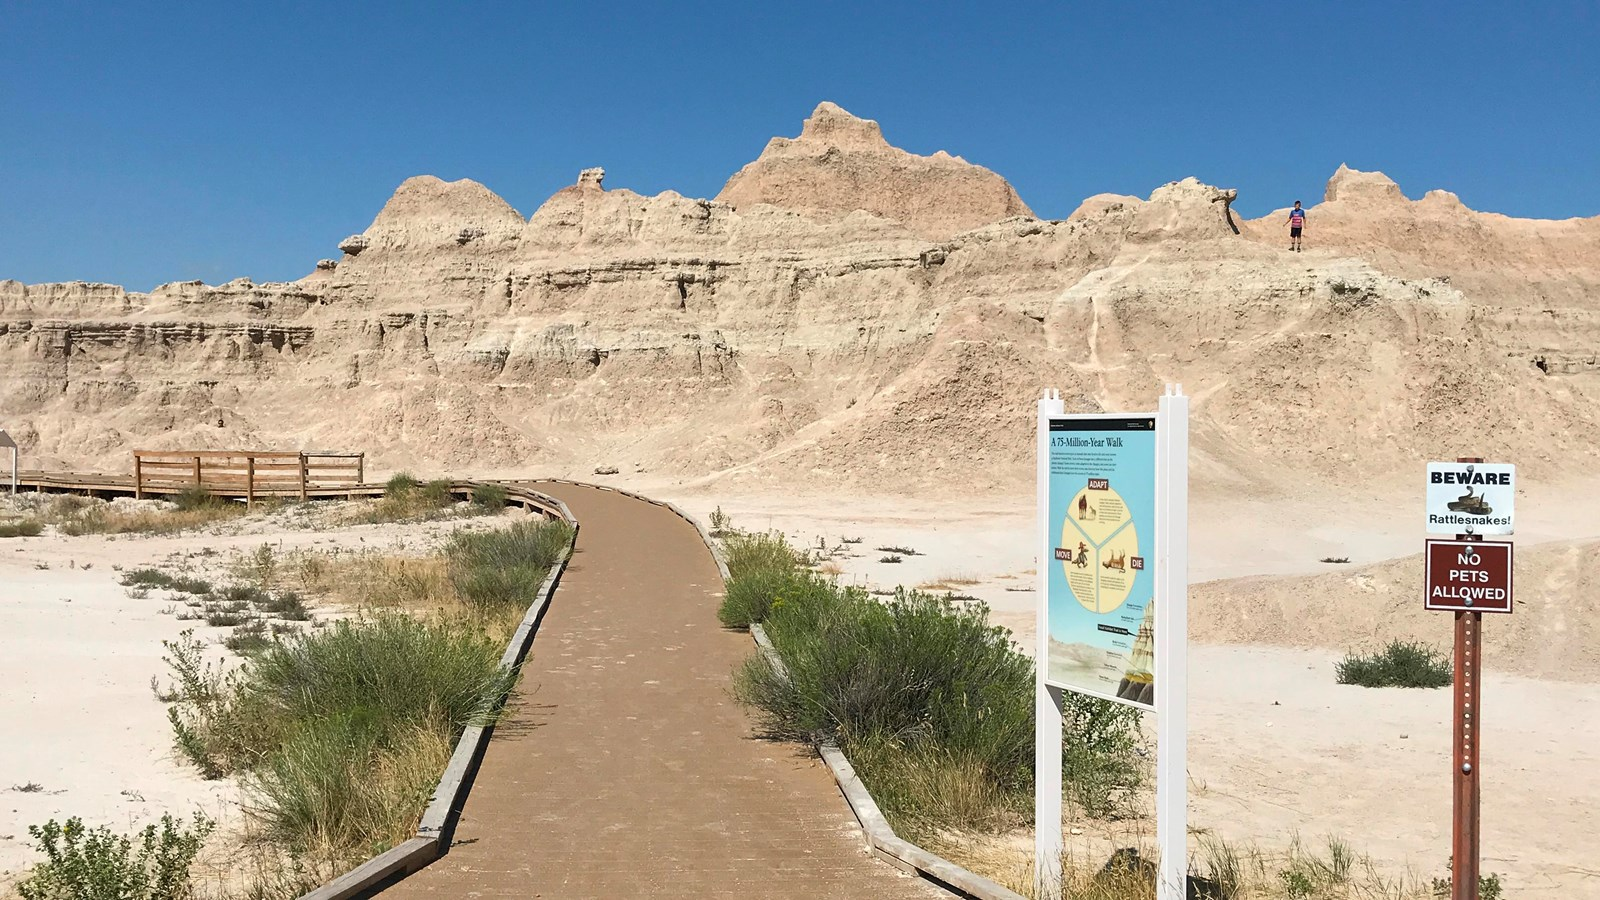 A boardwalk extends towards badlands formations under blue sky amid exhibit and rattlesnake sign.